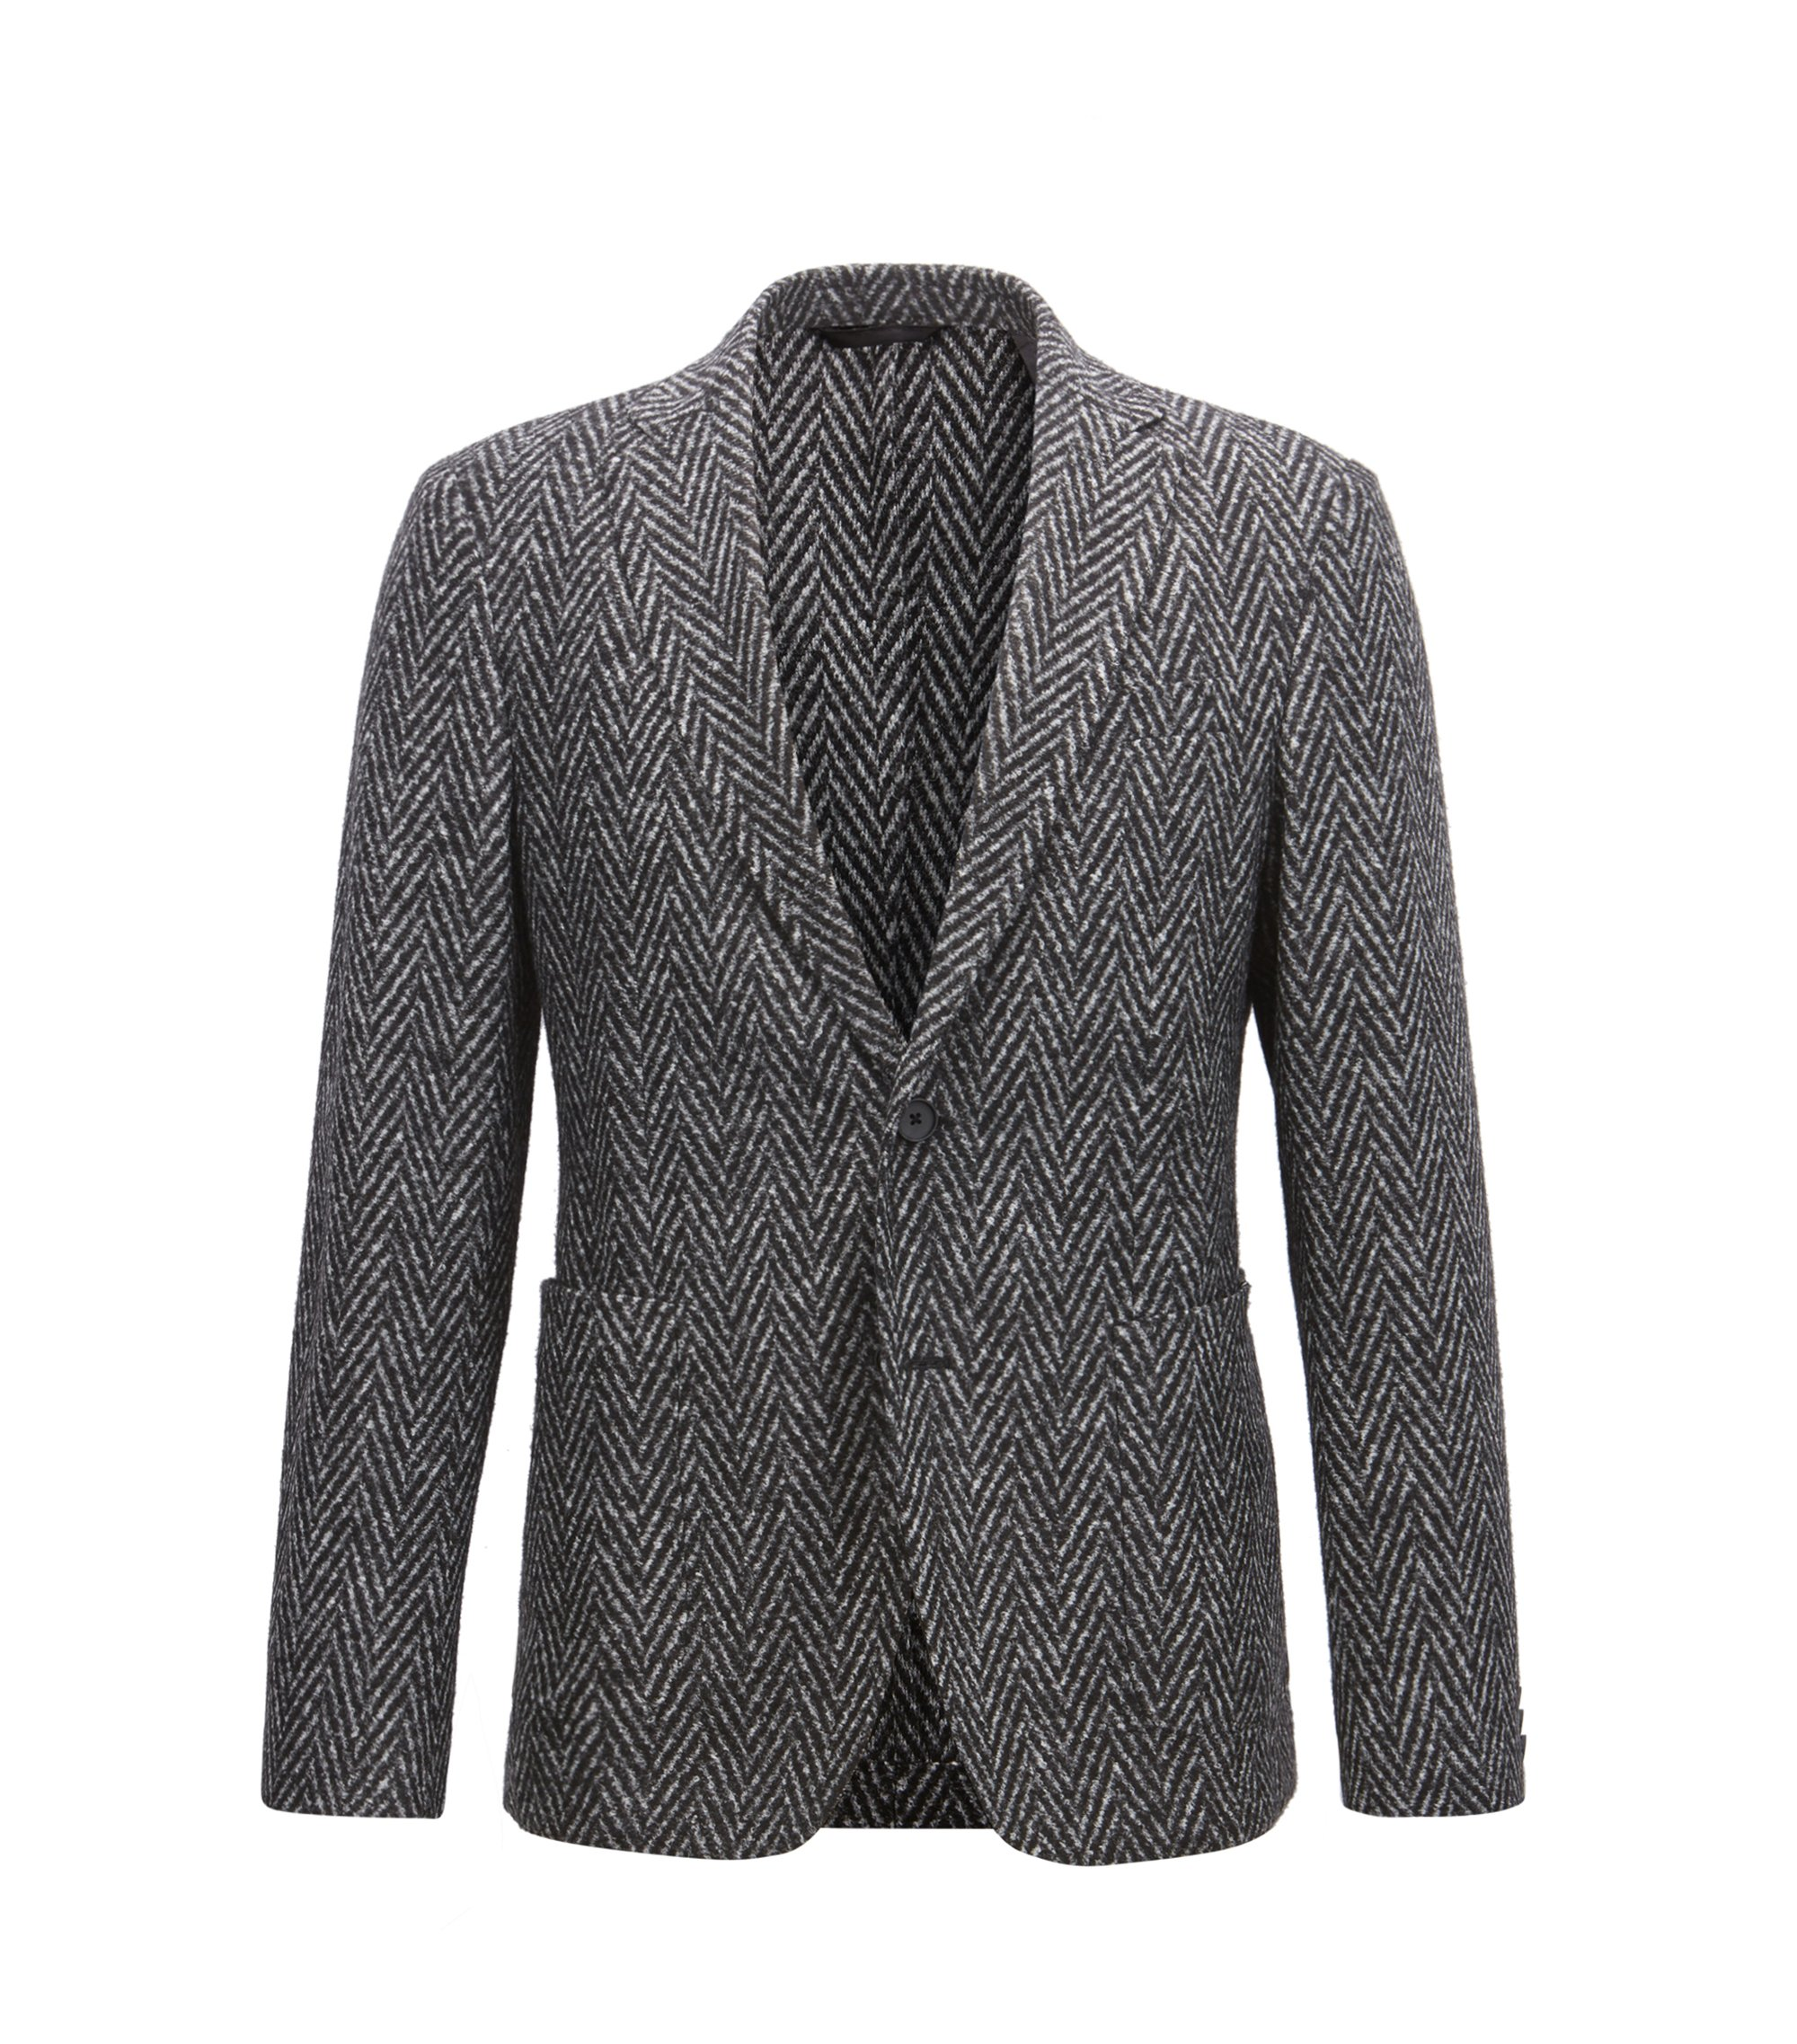 Slim-fit blazer in a herringbone weave, Grey